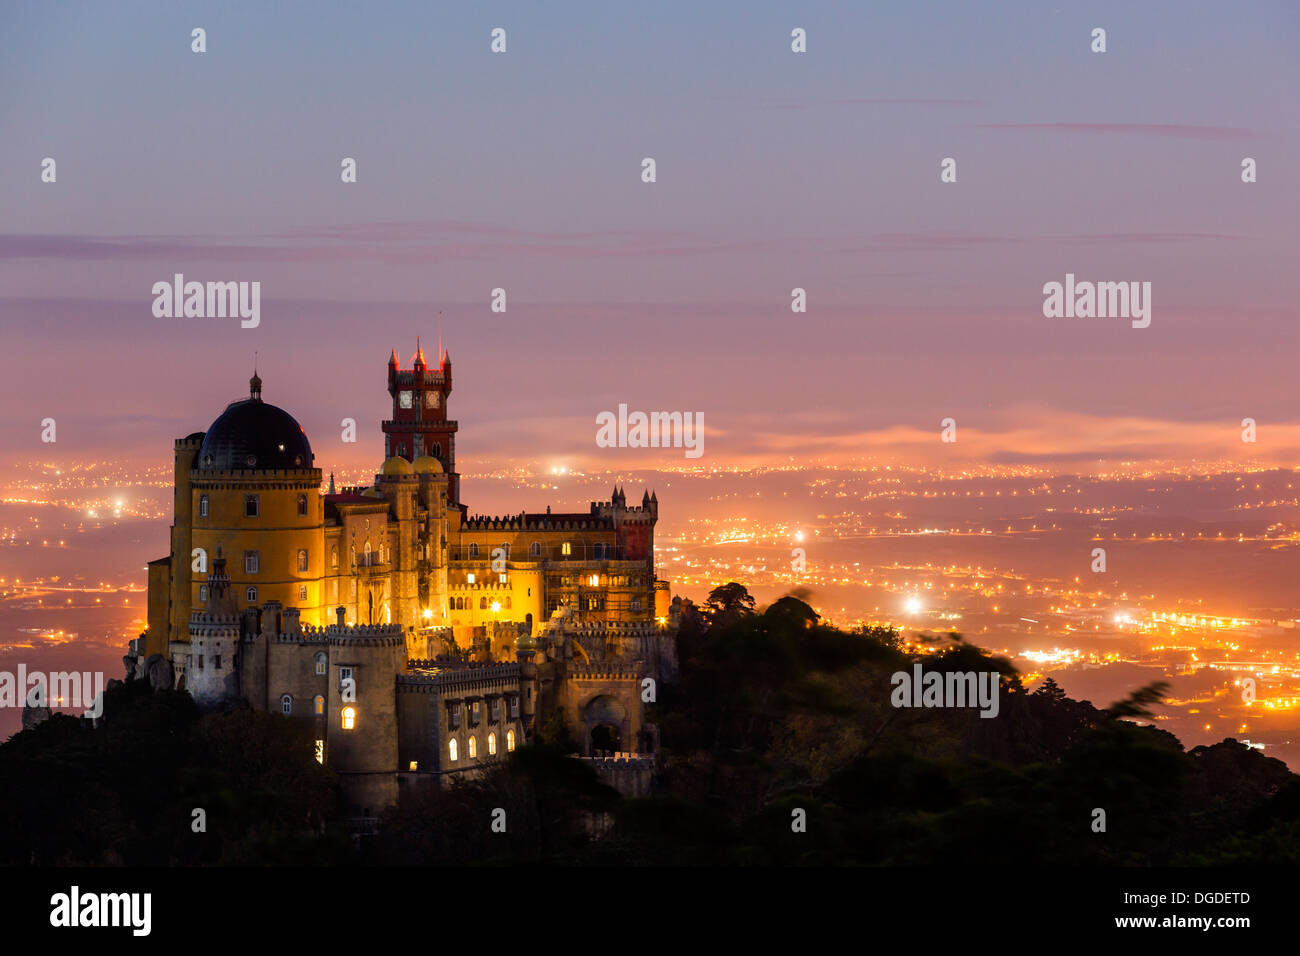 The Pena National Palace, Sintra, Portugal, Europe Stock Photo